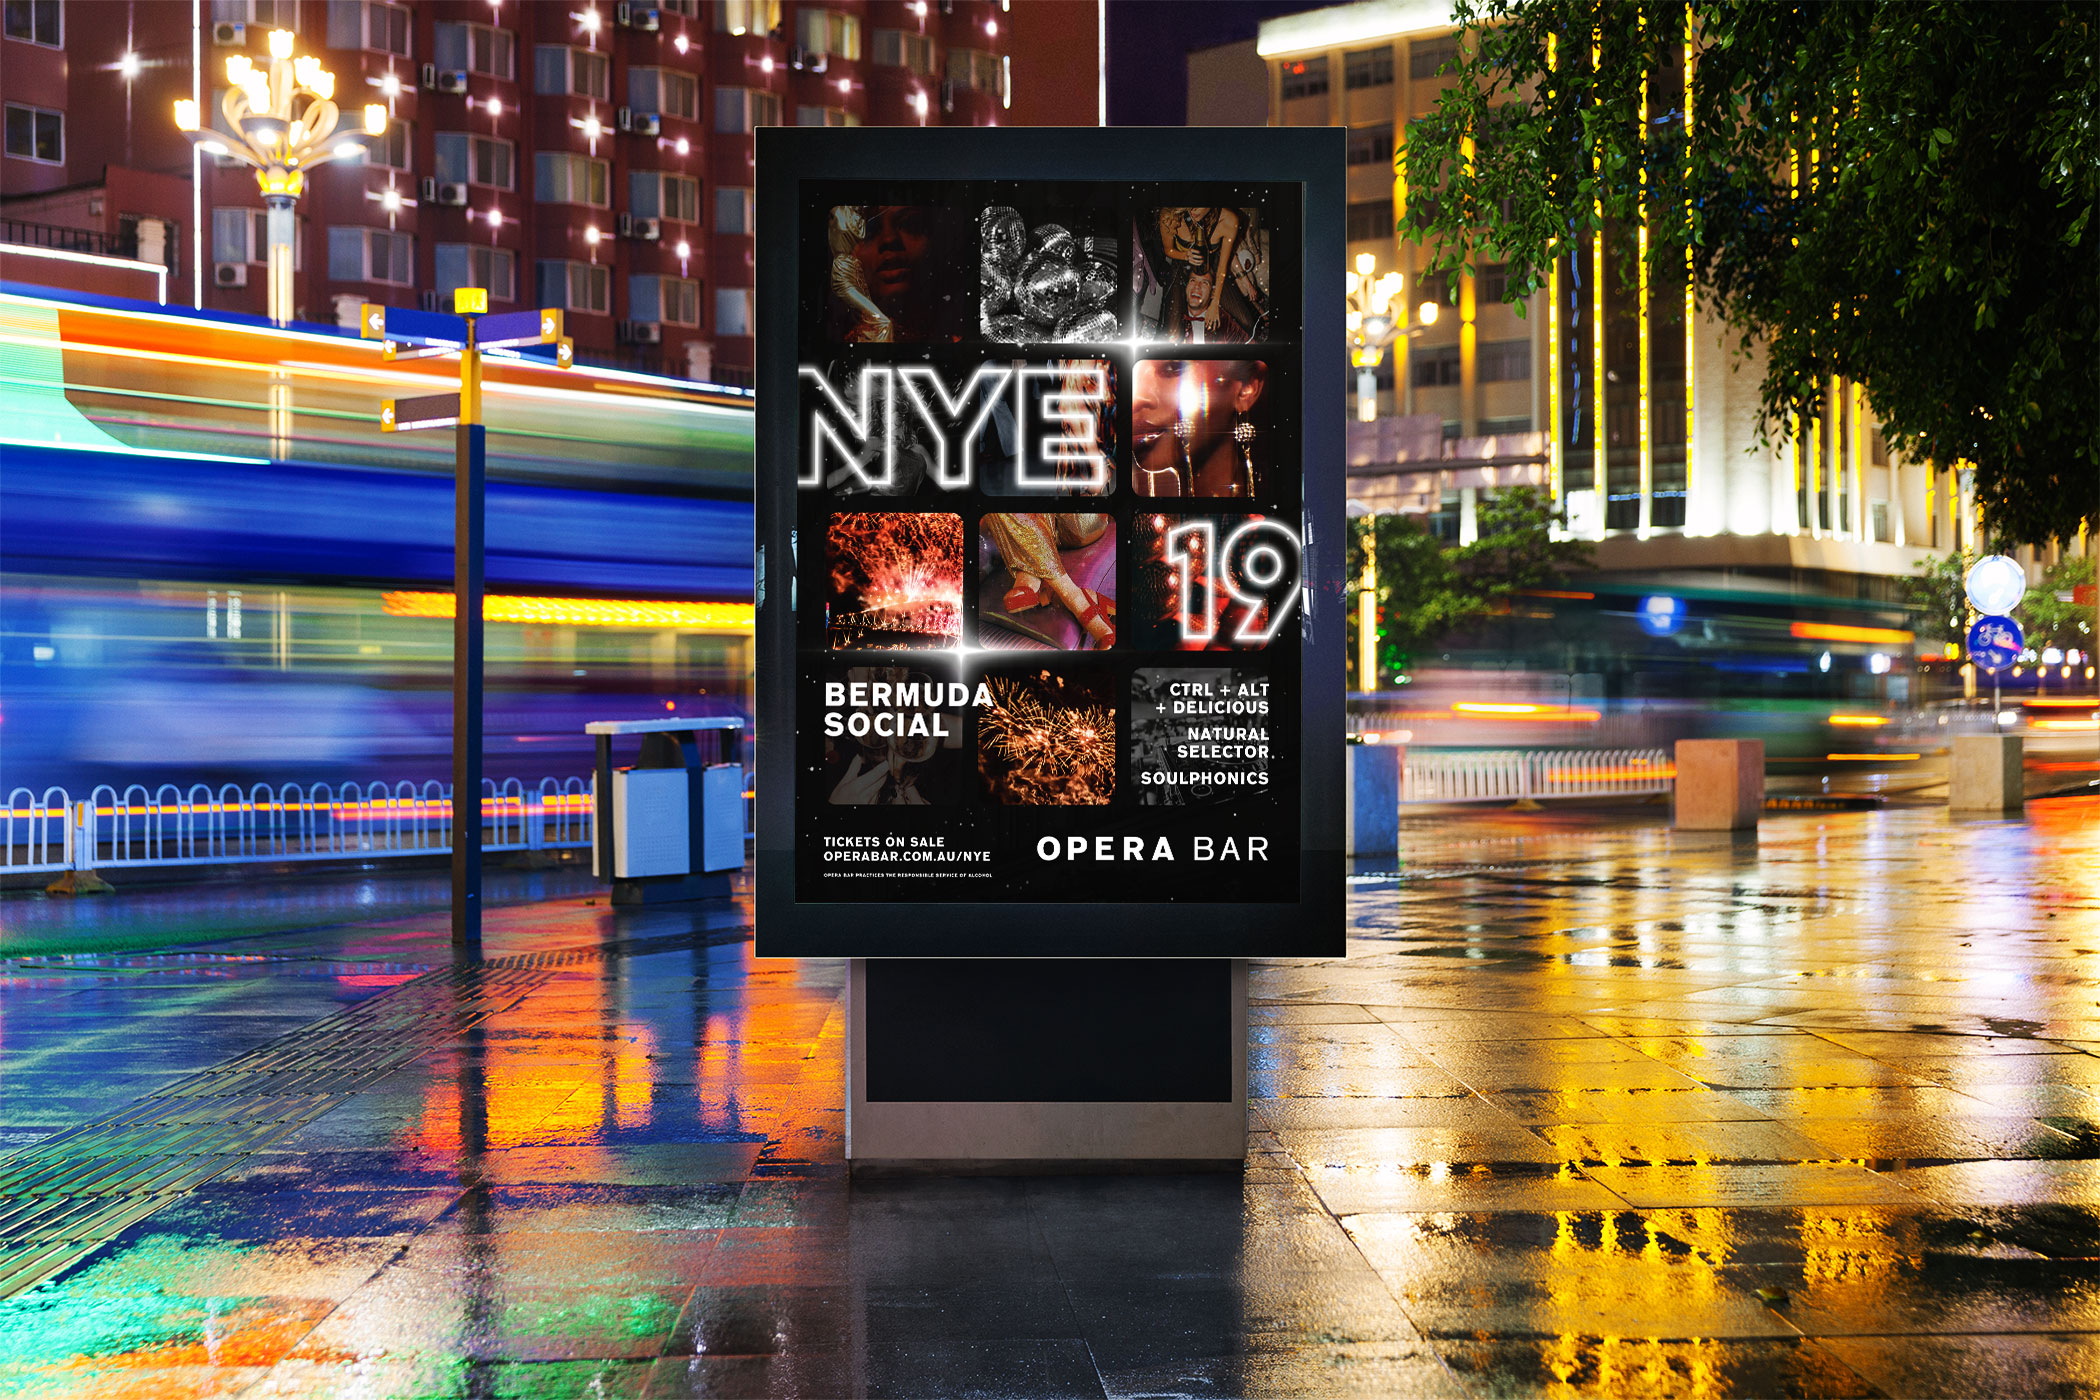 outdoor poster print design for a new years eve event at opera bar sydney